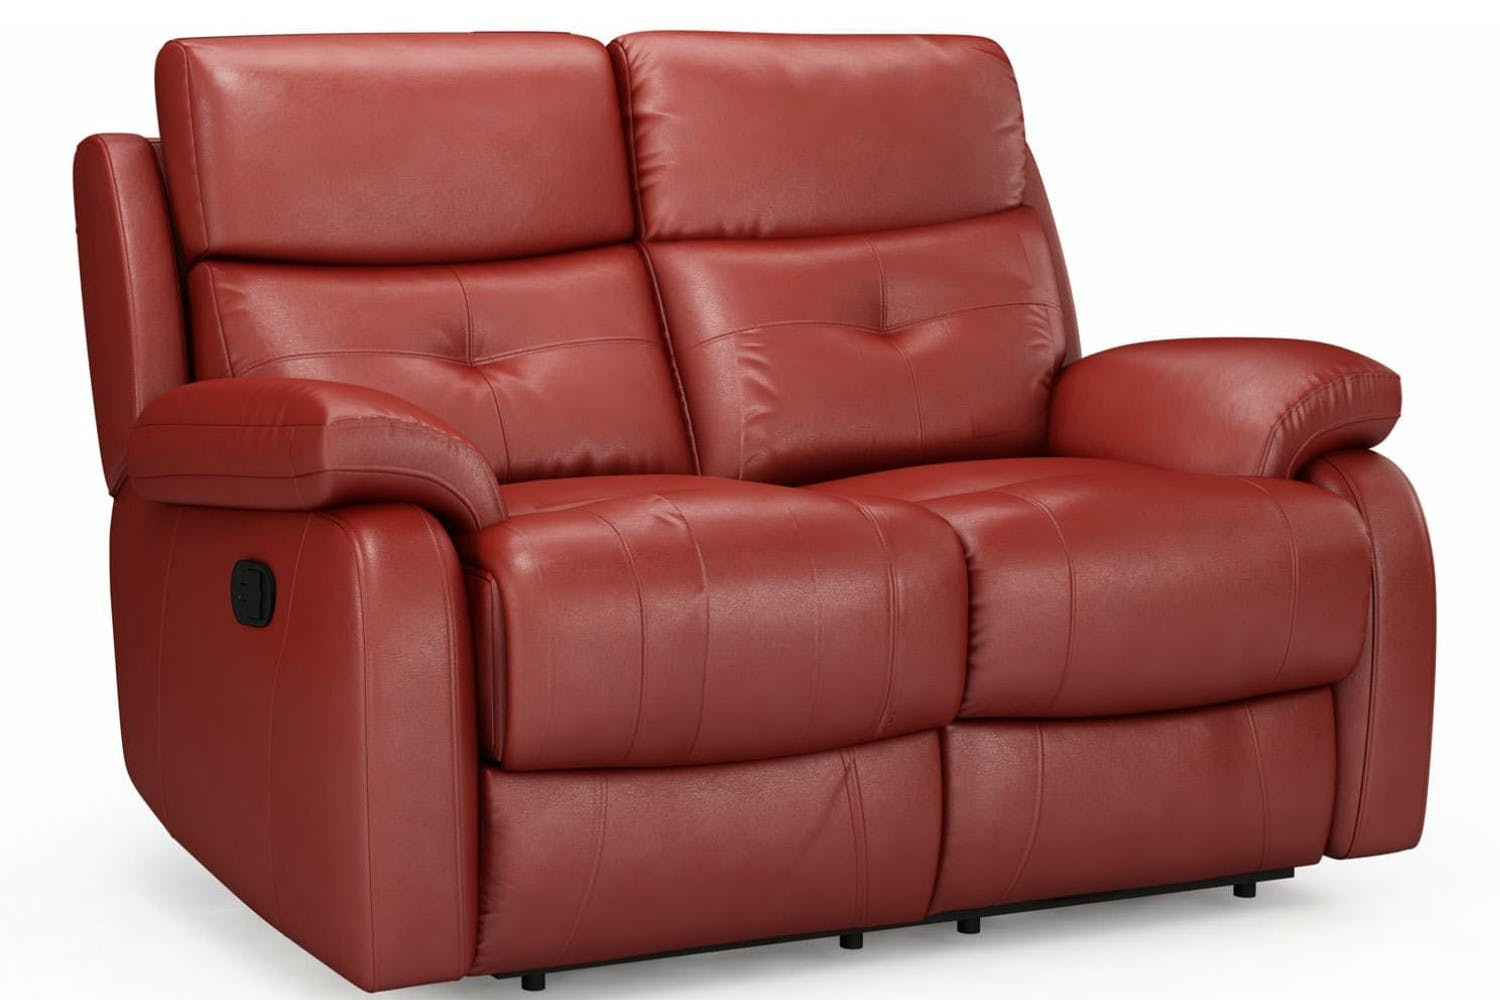 Mino 2 seater leather recliner sofa ireland for 2 seater leather sofa